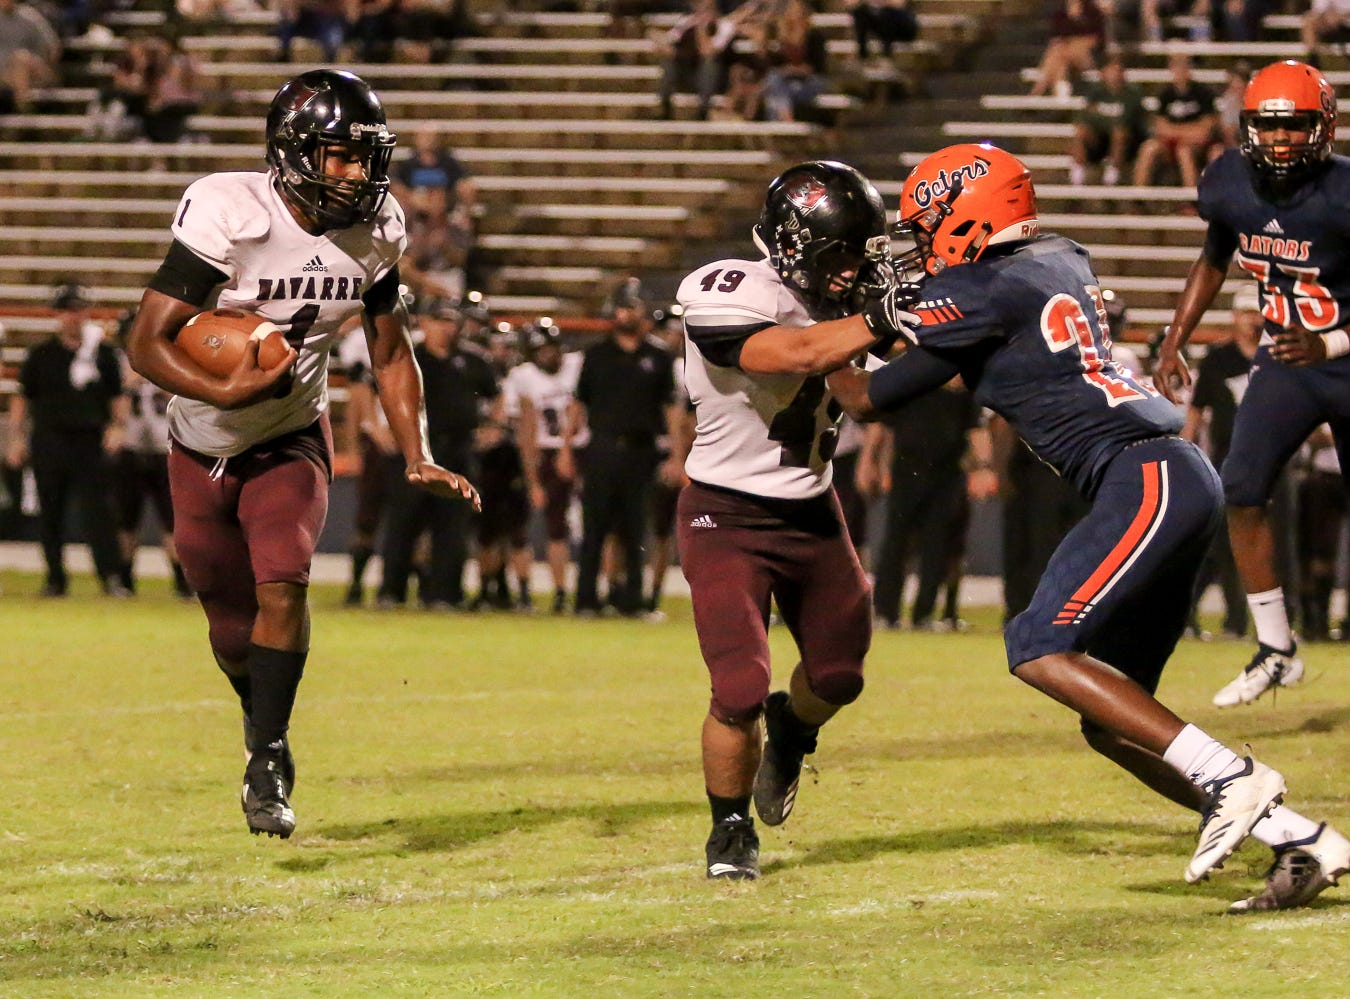 After faking a hand off to Dante Wright, not pictured, Navarre quarterback Marlon Courtney III (1) keeps the ball and follows his lead blocker, Fernando Gomez (49), for positive yards against the Gators in the homecoming game at Escambia High School on Friday, October 5, 2018.